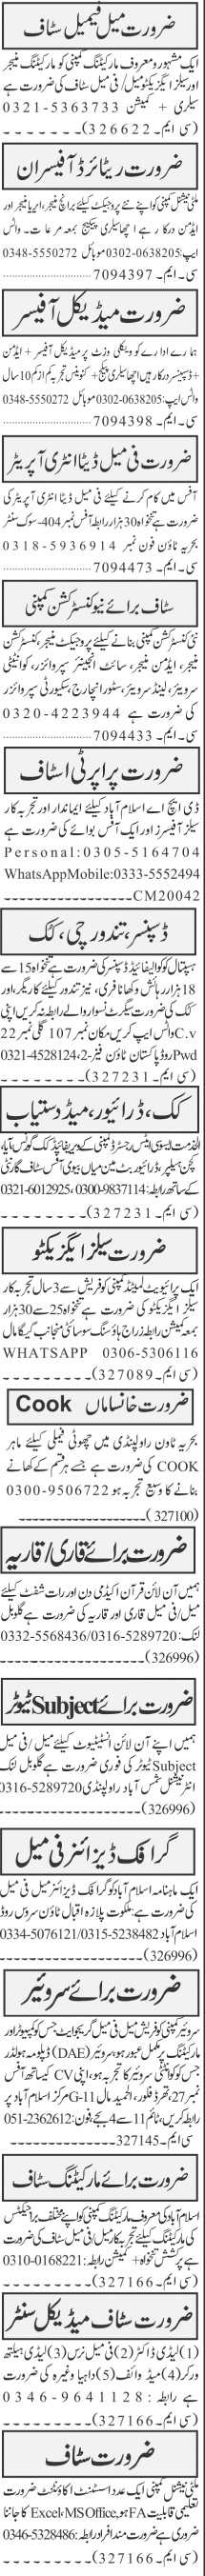 Daily Jang Newspaper Sunday Classified Miscellaneous Staff Jobs Feb 2021